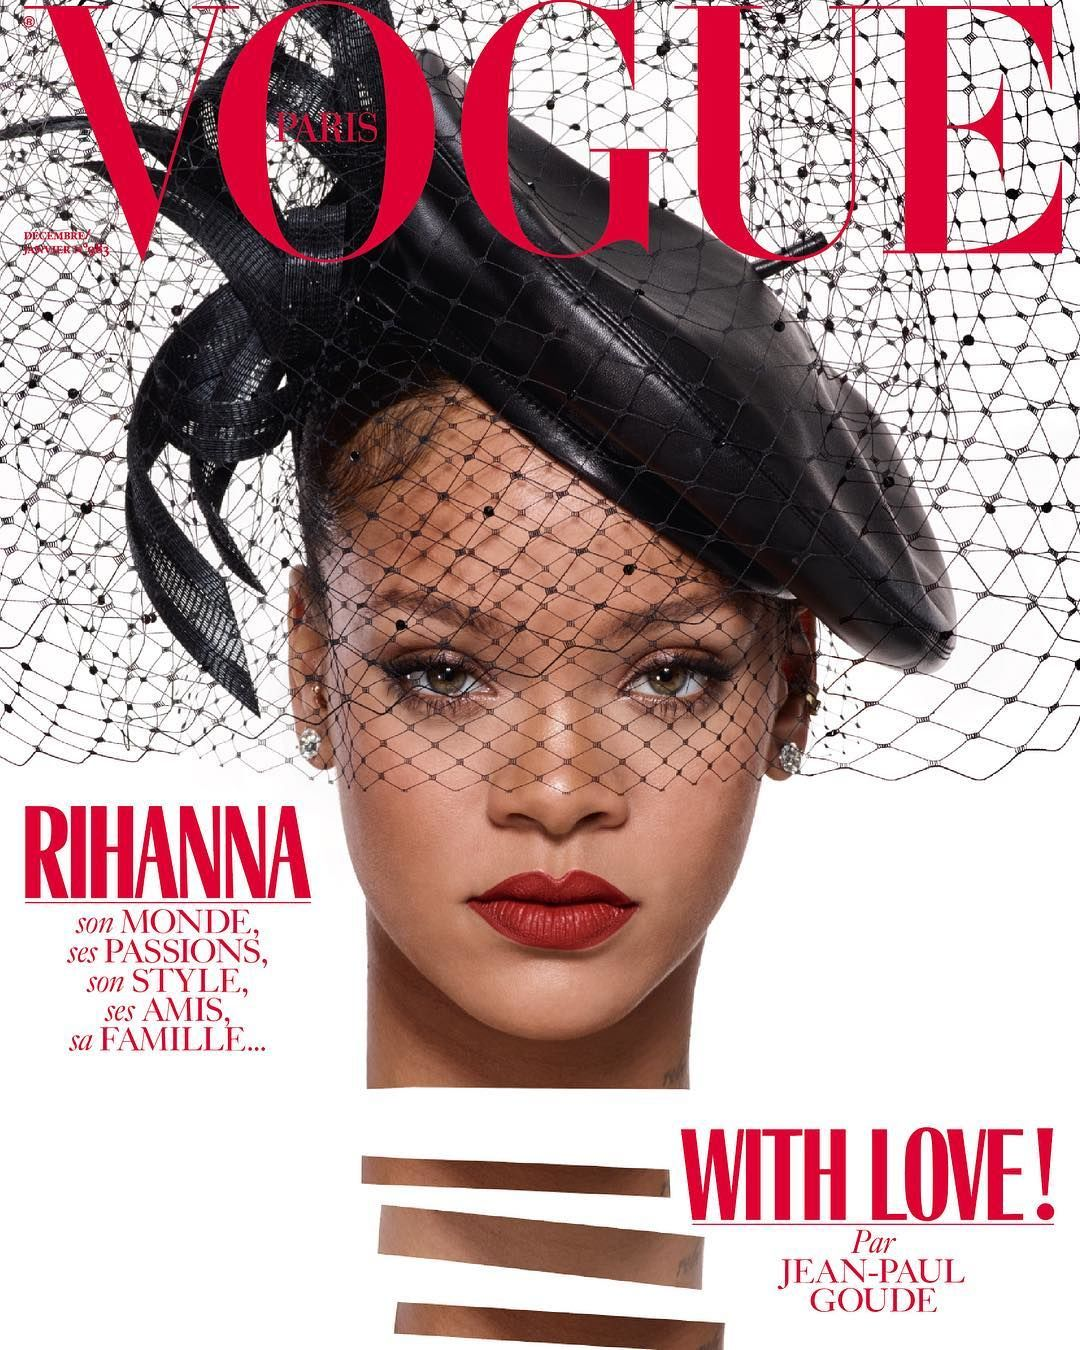 RIHANNA FOR VOGUE PARIS!